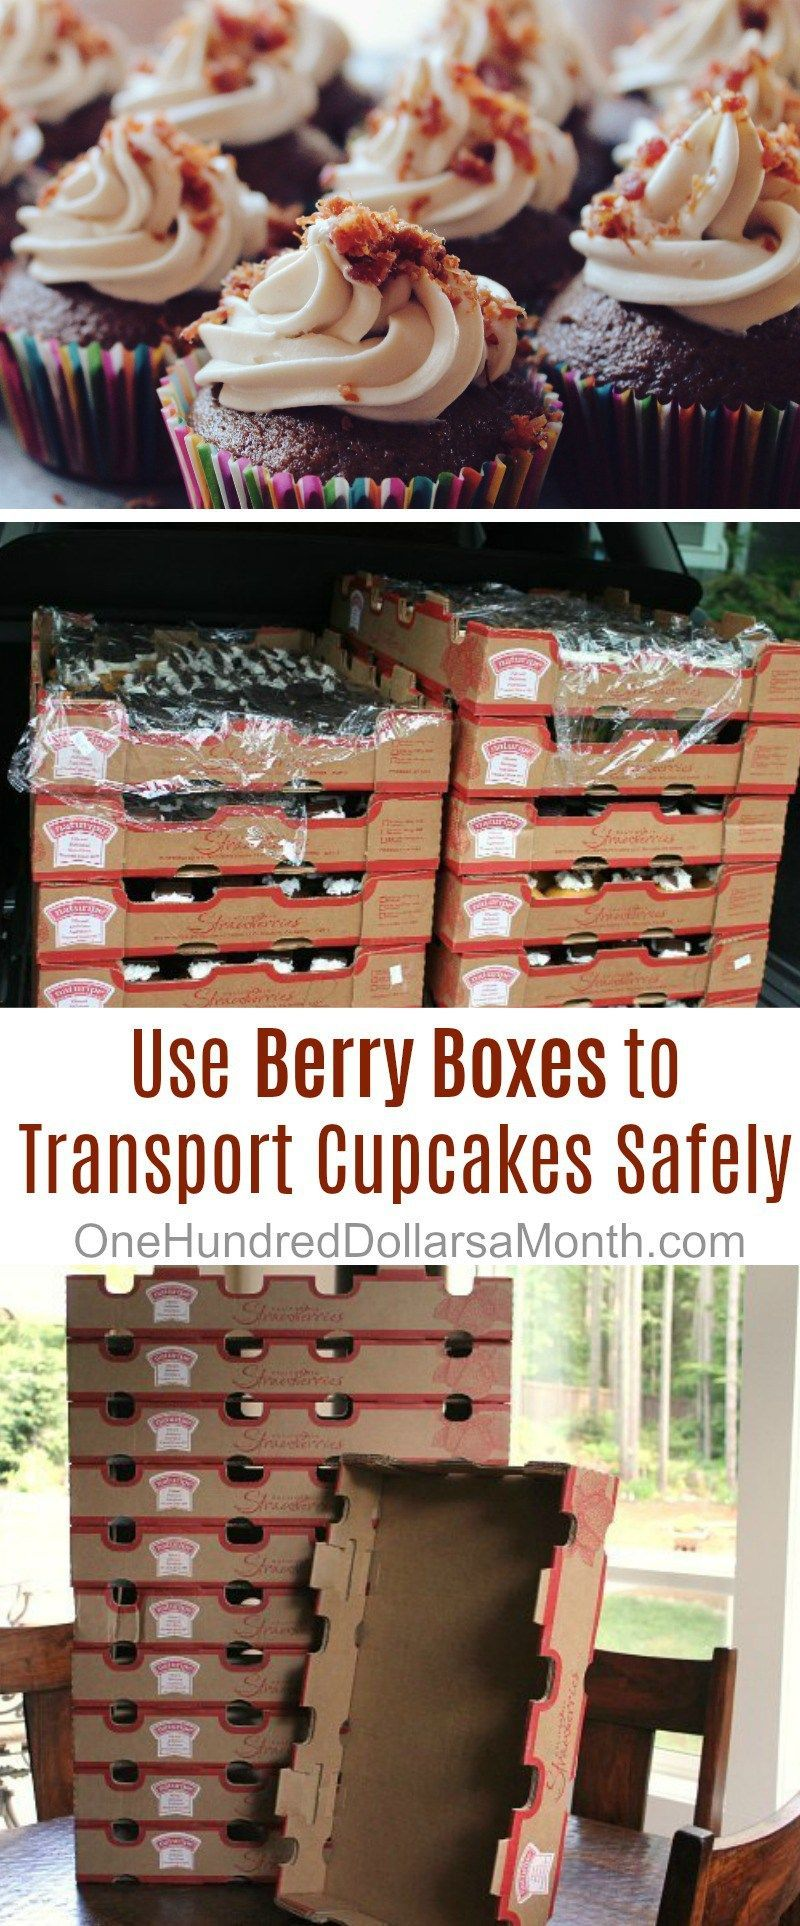 How to transport 600 cupcakes safely one hundred dollars